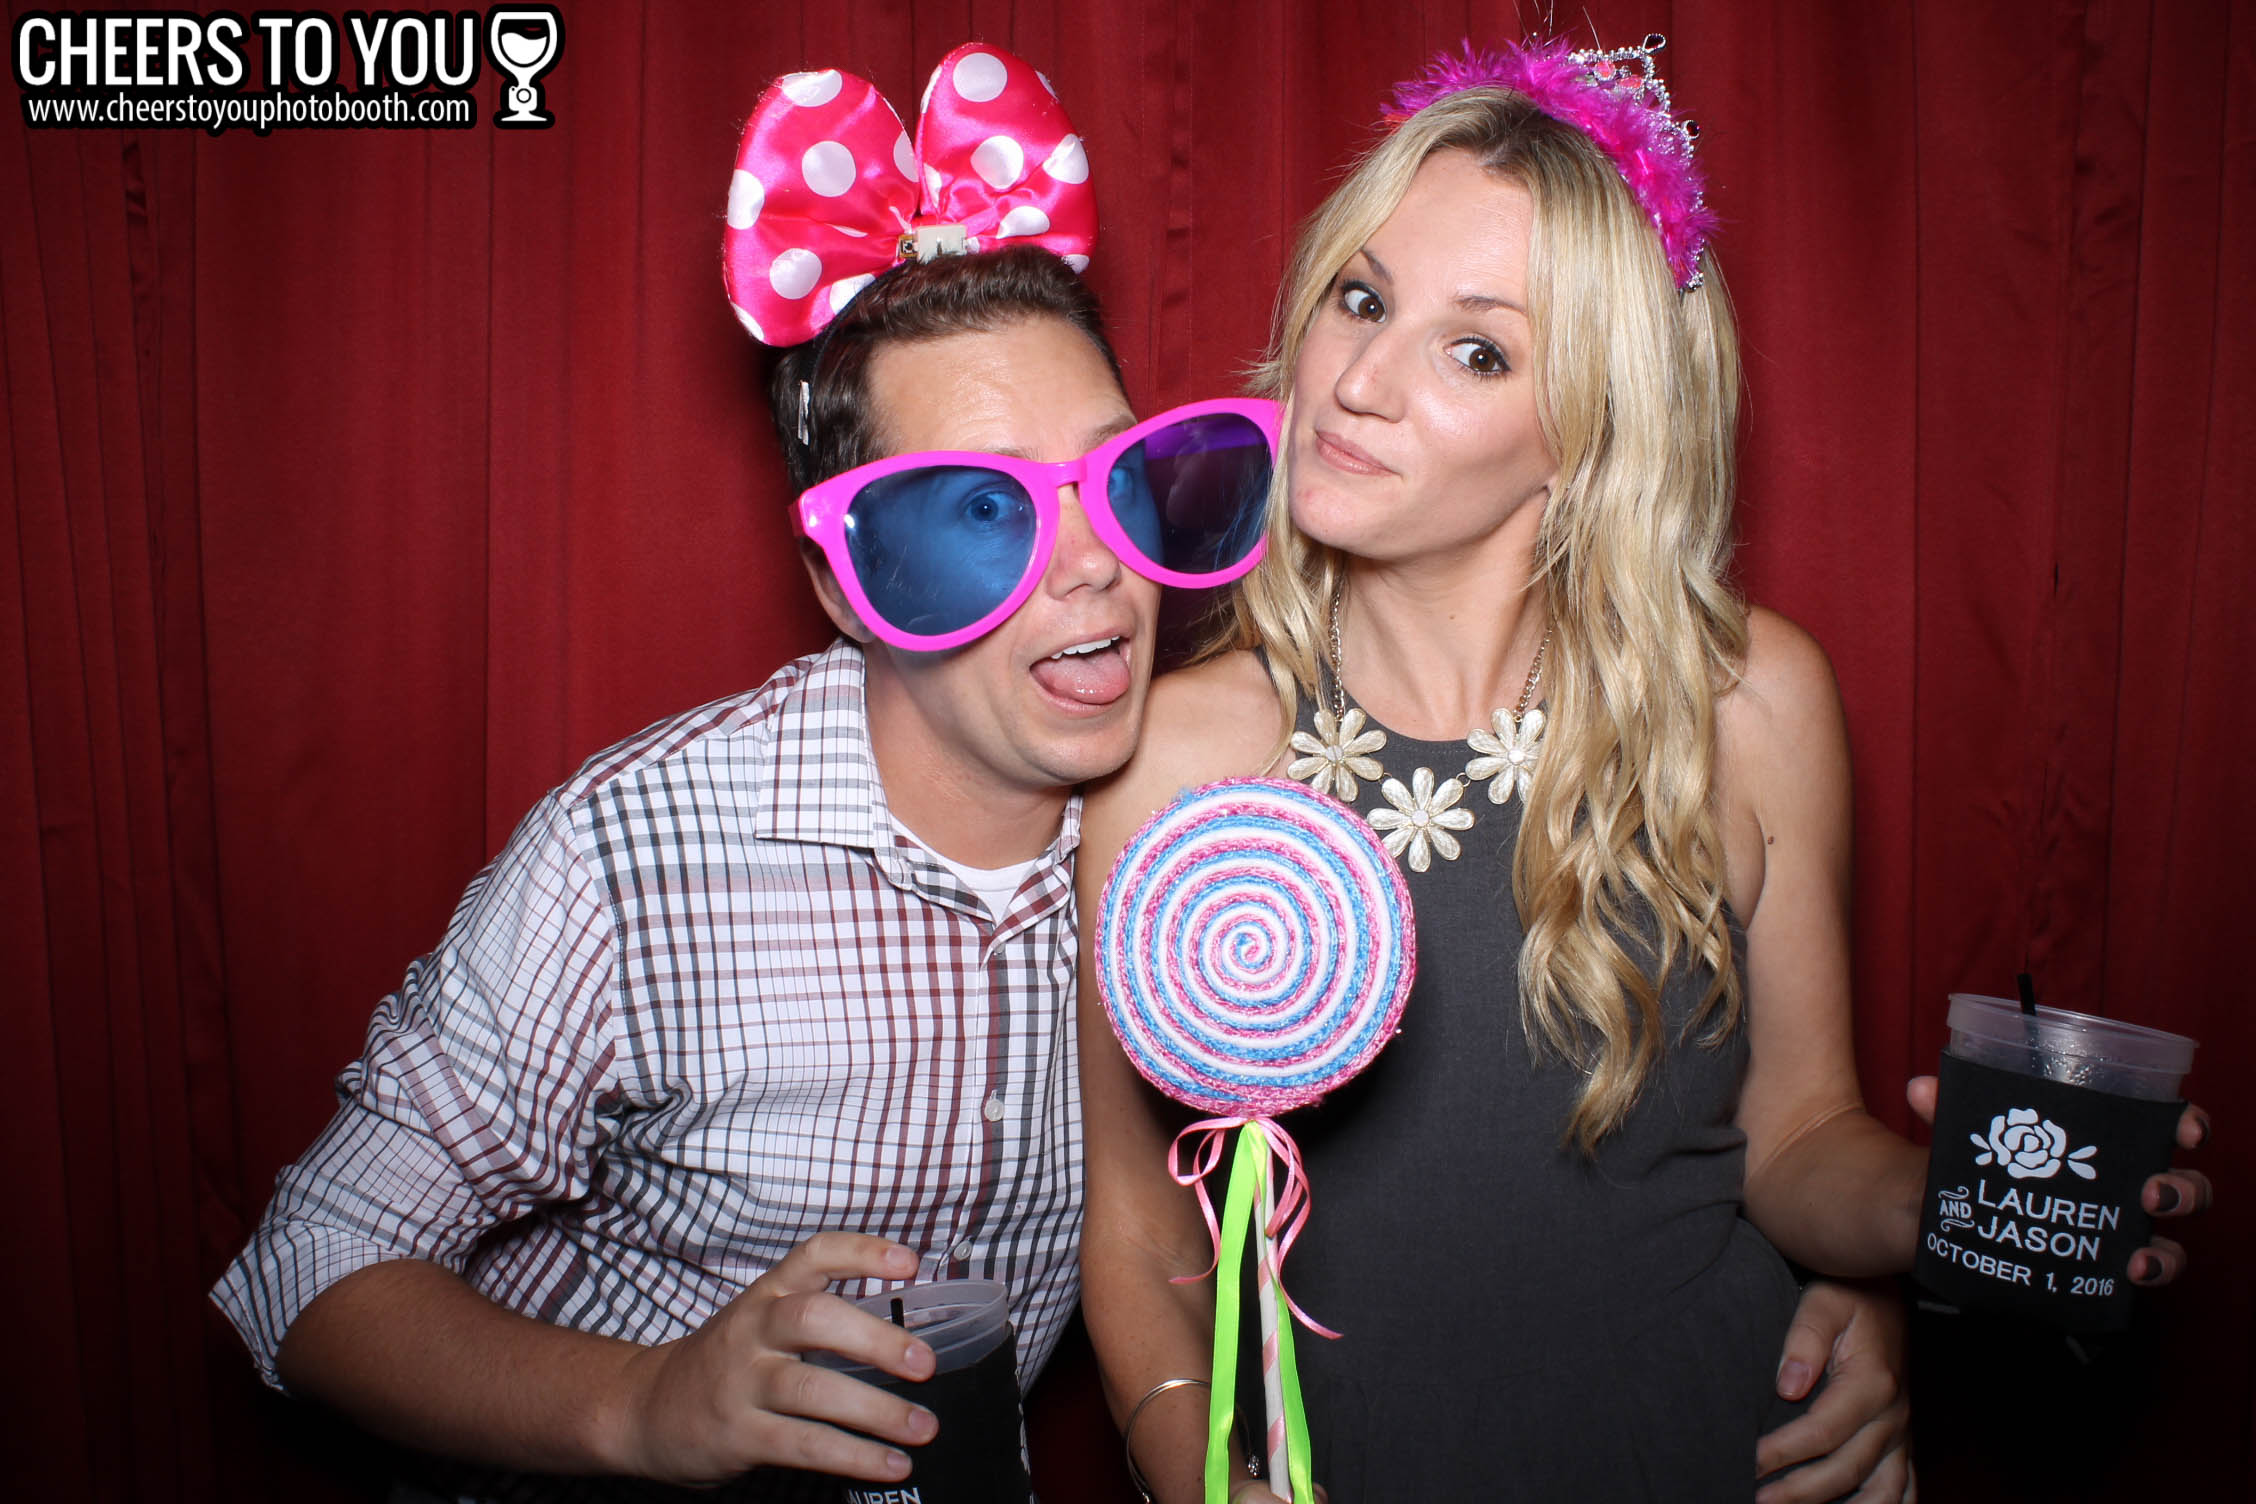 Cheers To You Photo Booth | Huntington Beach, CA | Lauren & Jason's Wedding